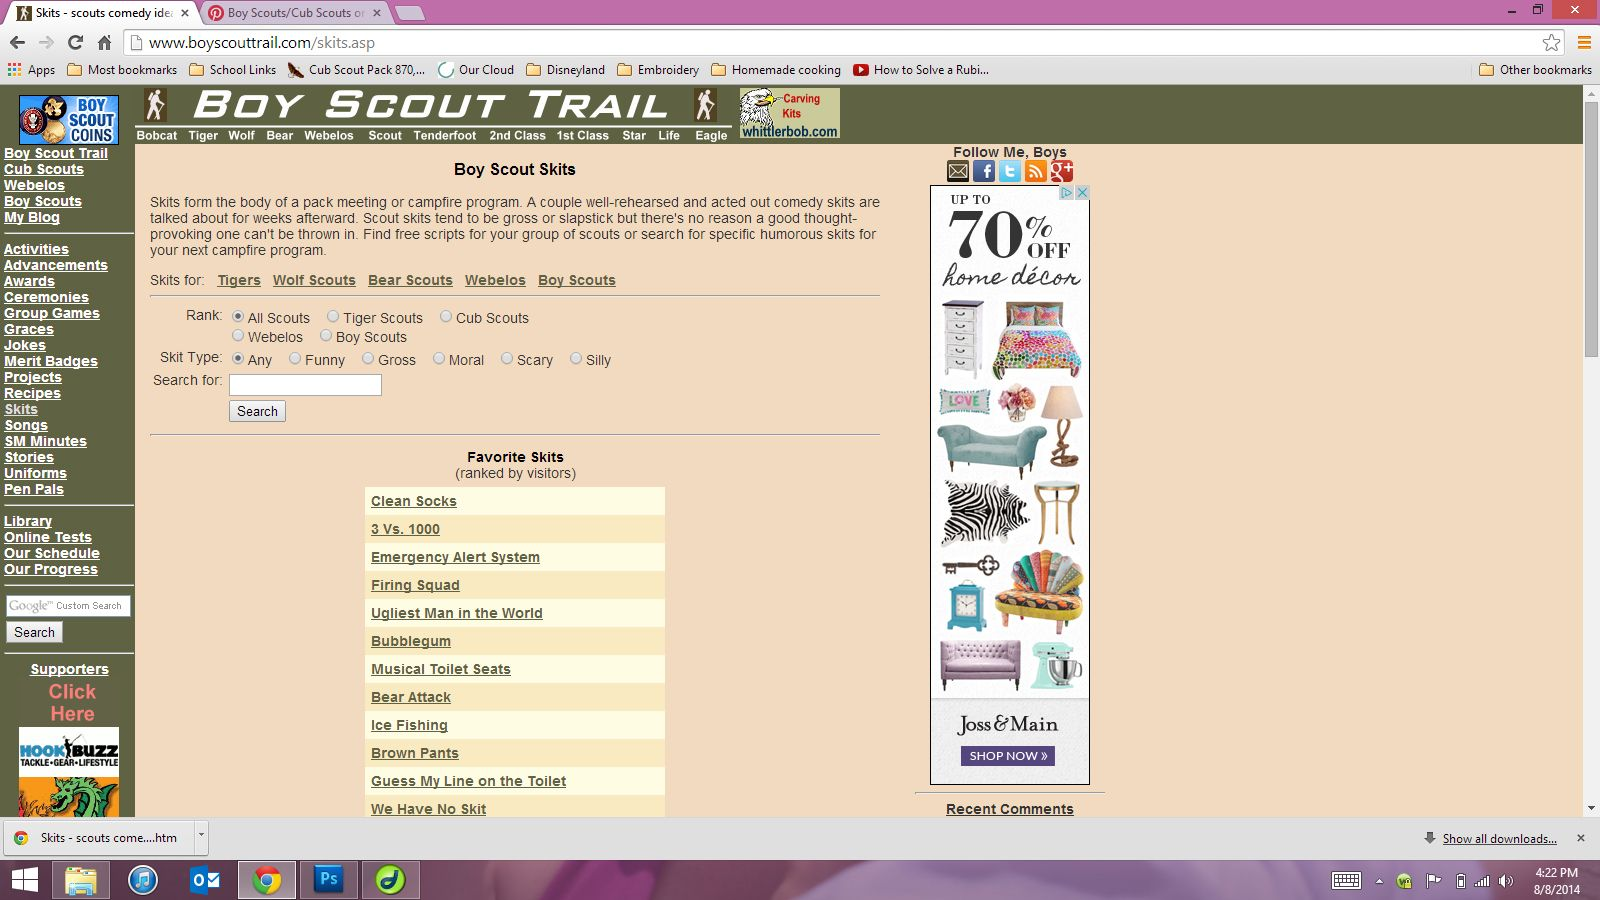 Great site for boy/cub scout skits  http://www.boyscouttrail.com/skits.asp